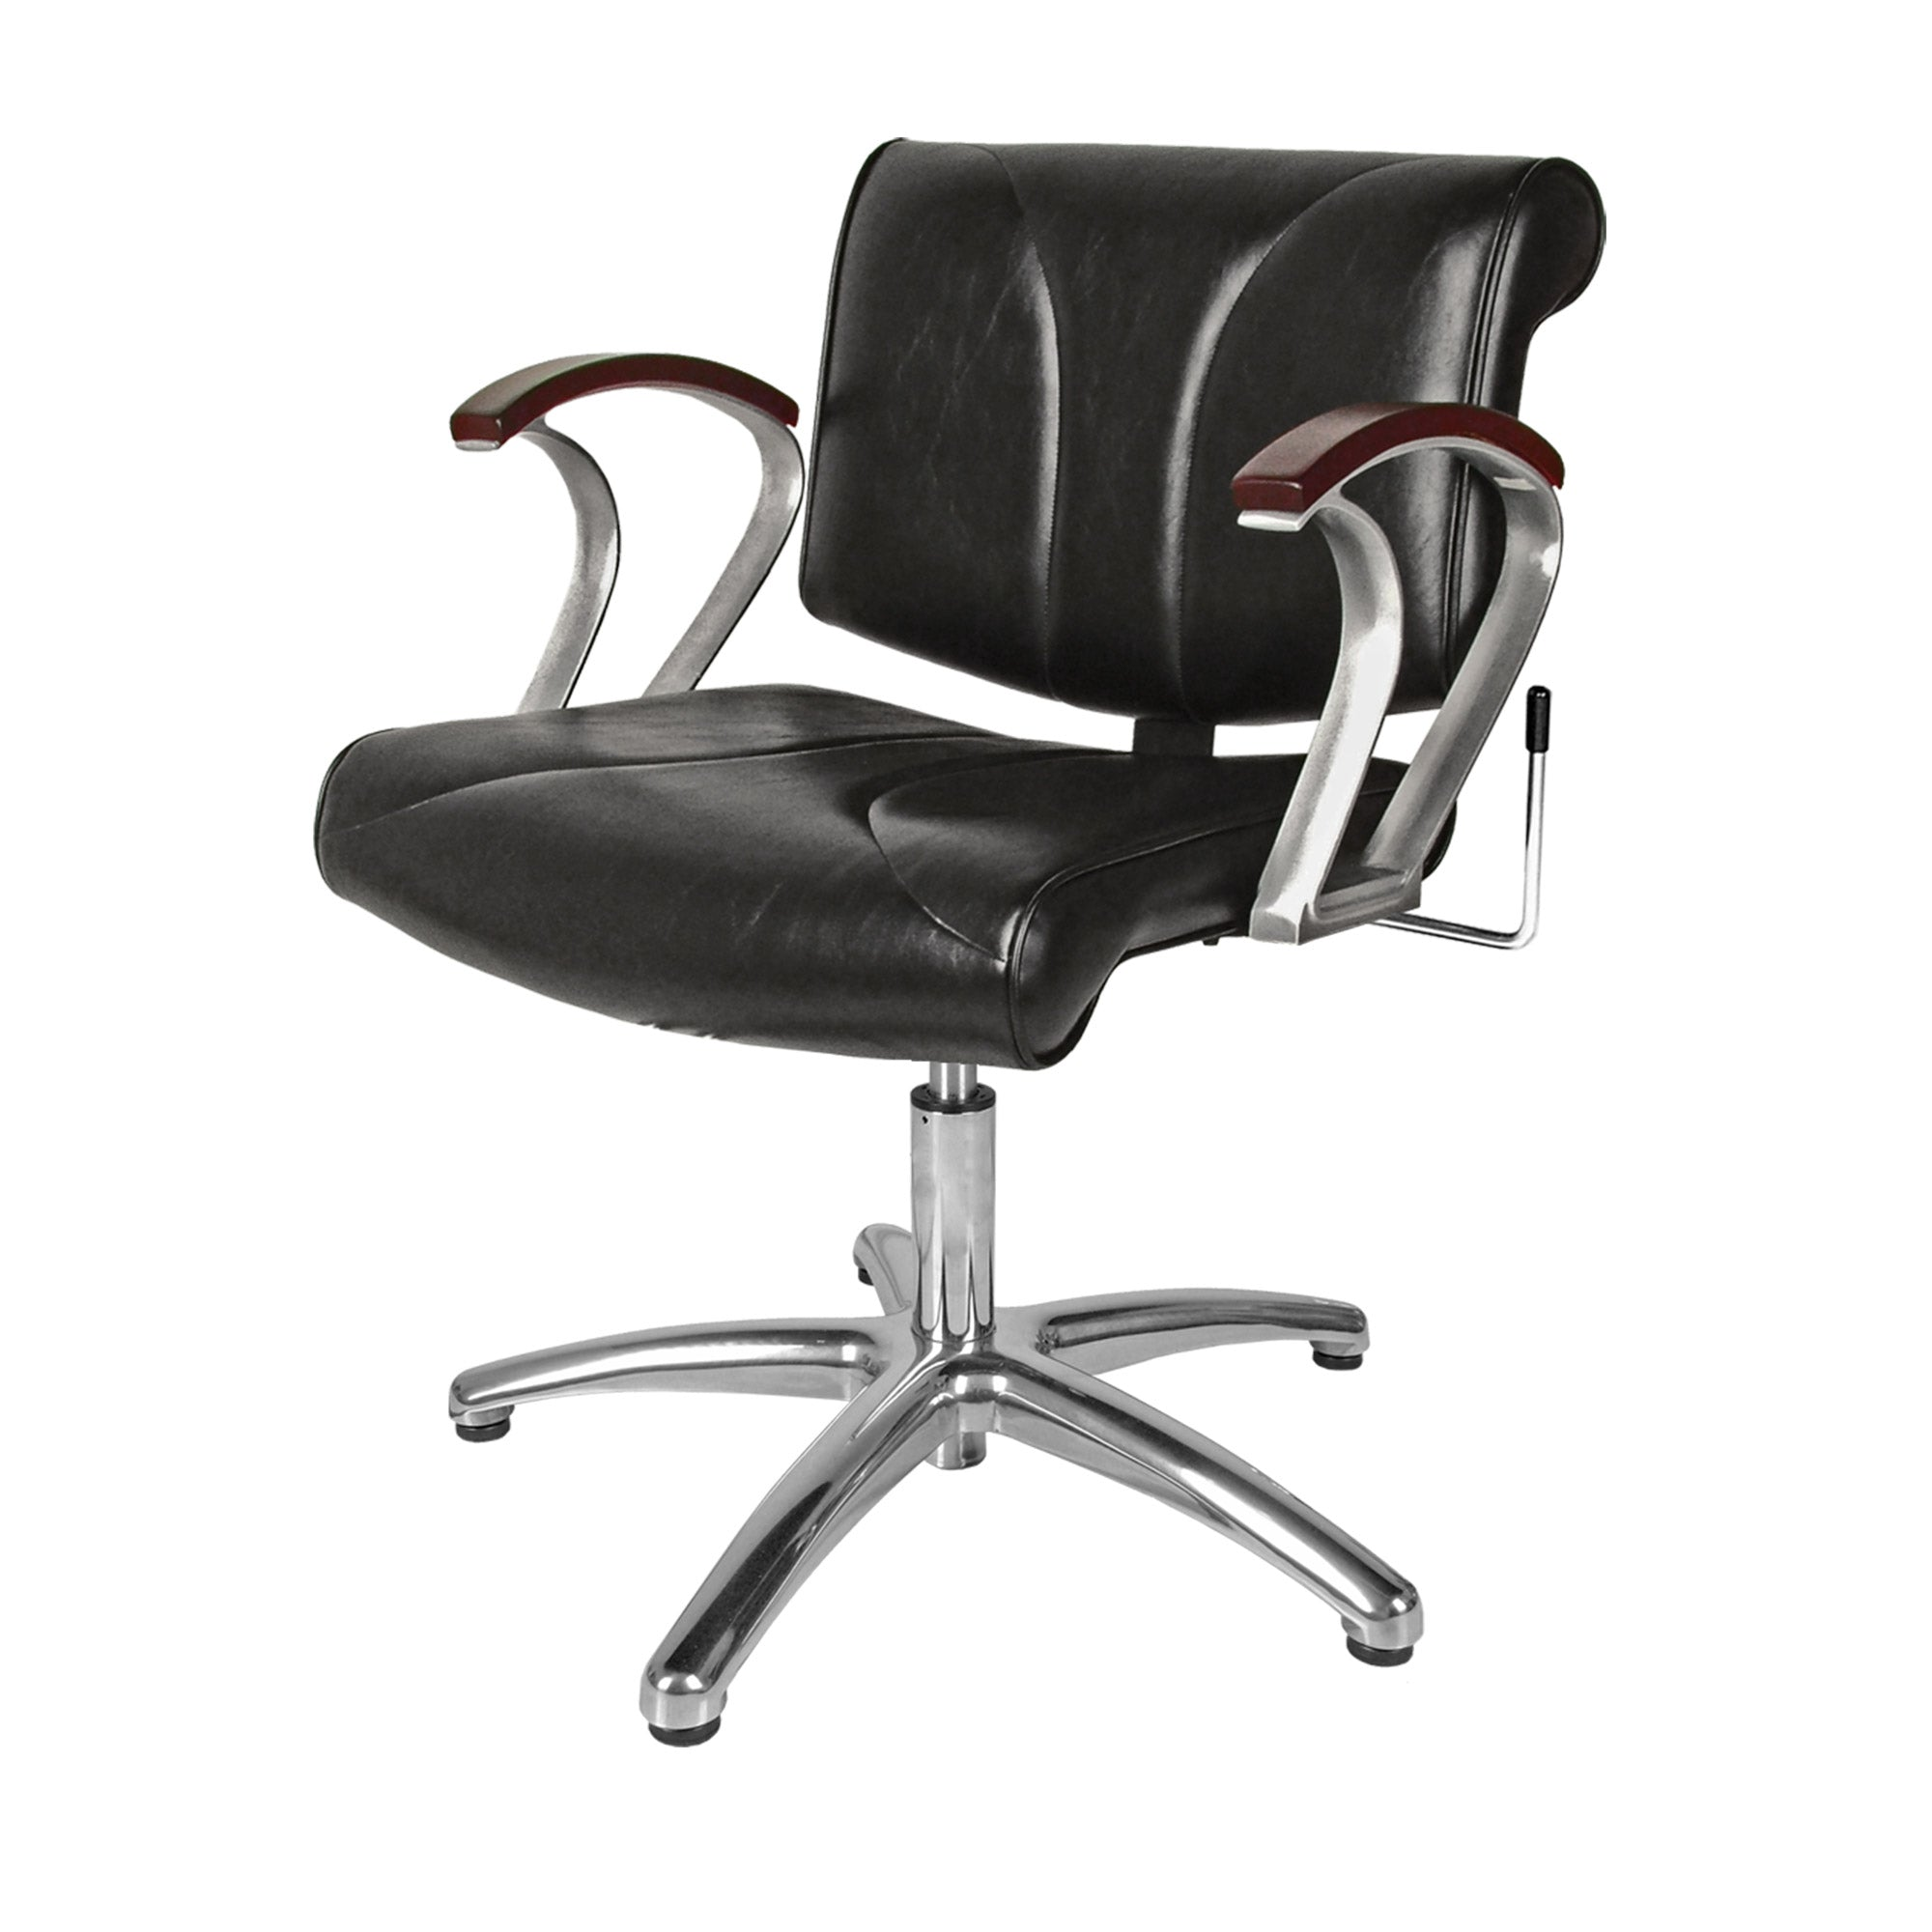 Chelsea BA Lever-Control Shampoo Chair - Collins